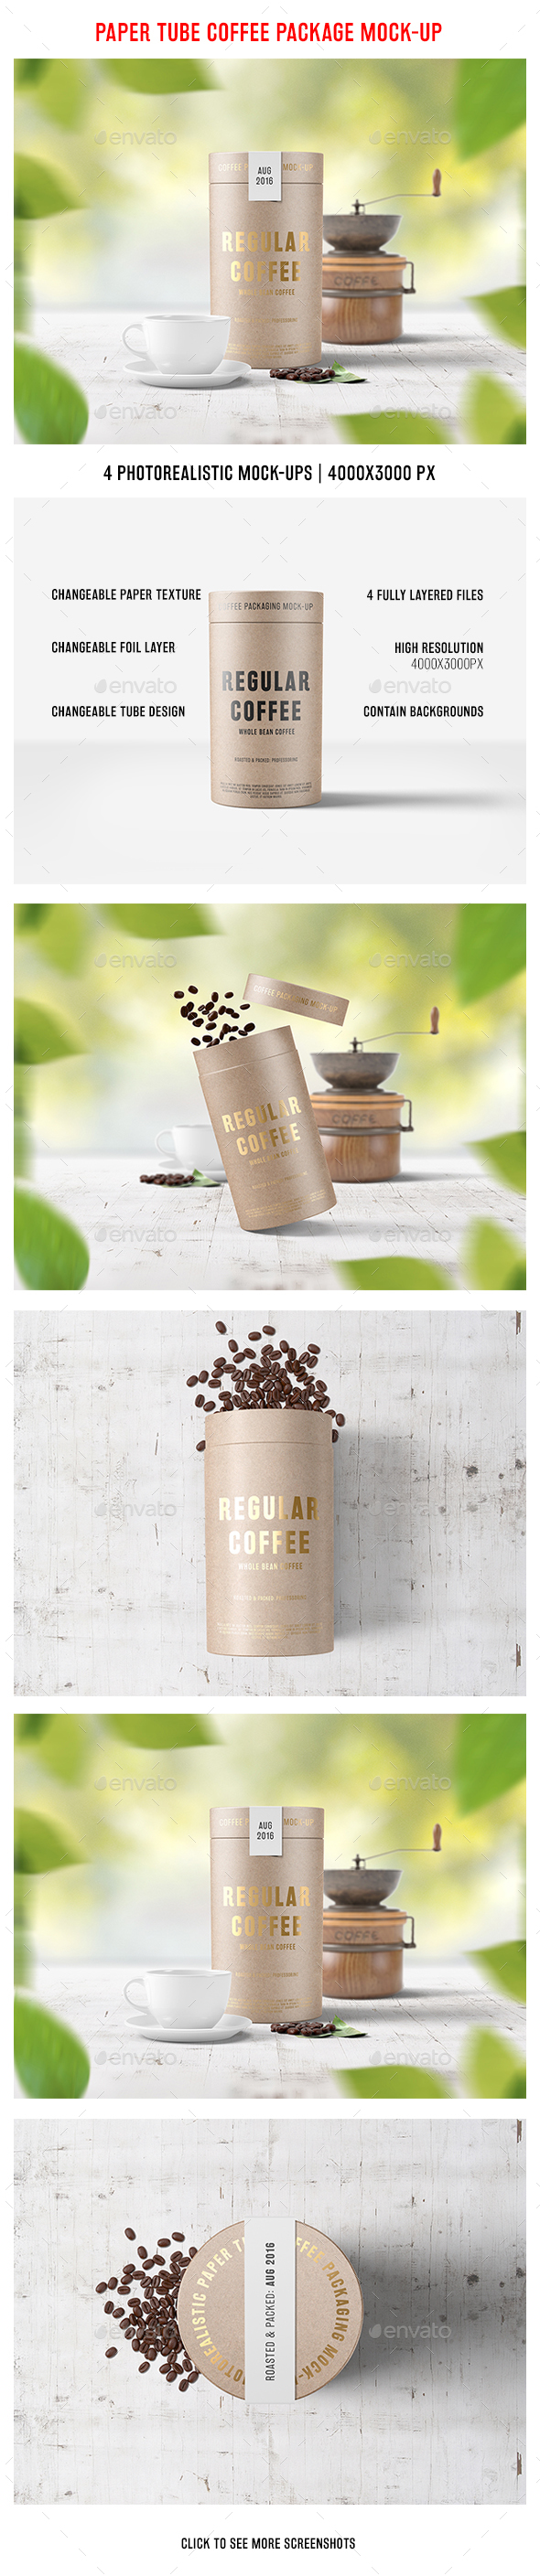 Paper Tube Coffee Package Mock-Up